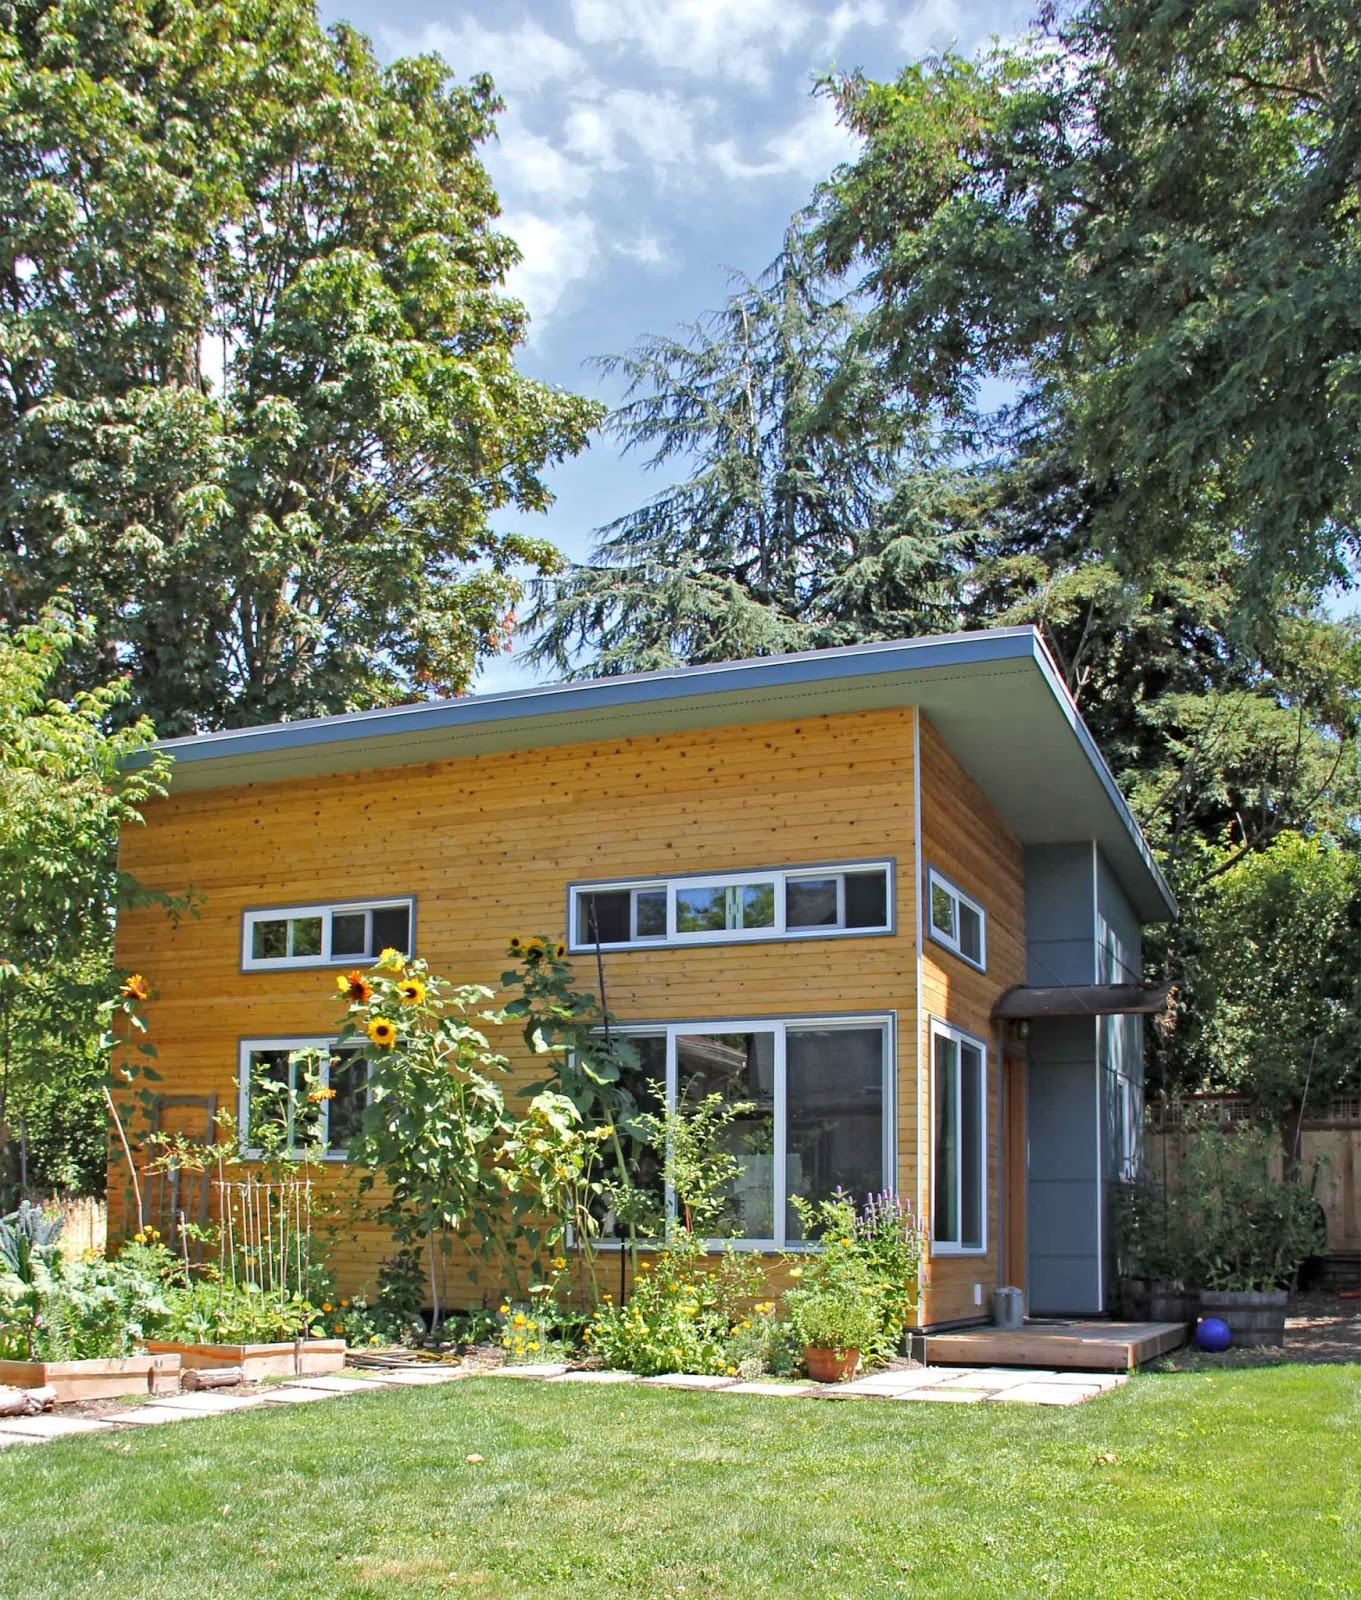 Seattle Backyard Cottage Rules : backyard cottage blog capitol hill cottage